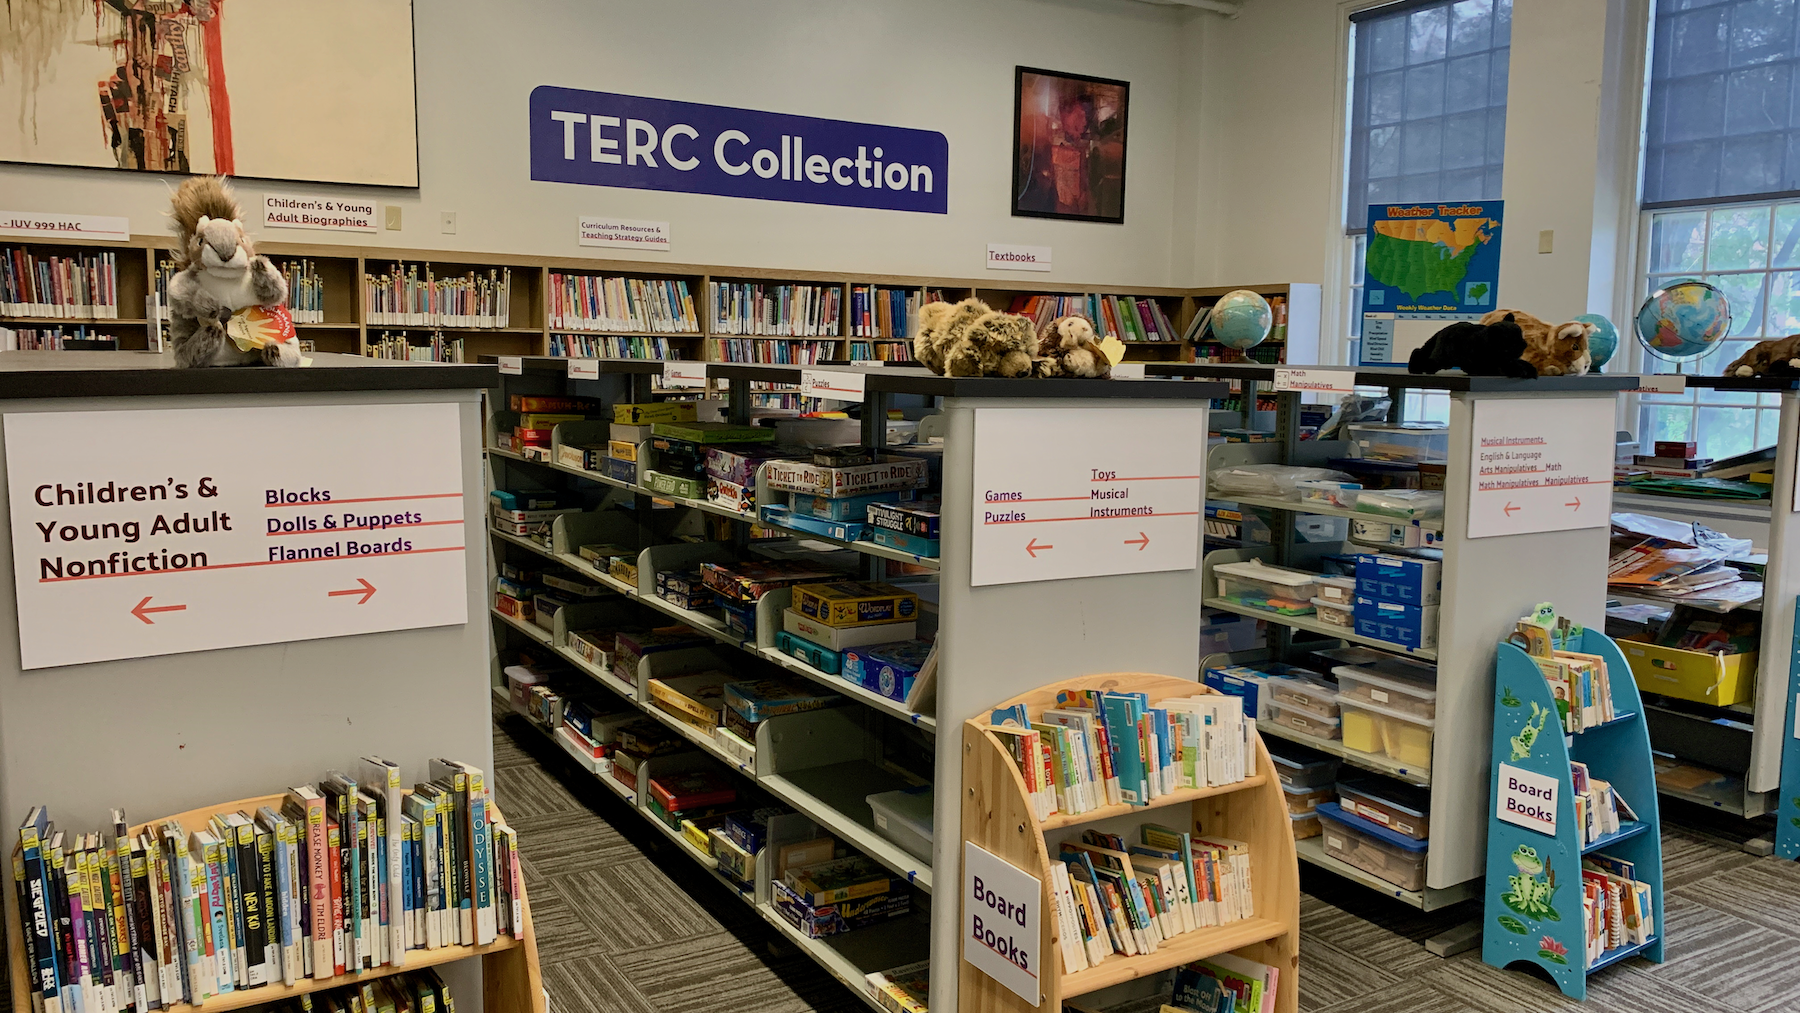 Overview of items in the TERC Collection